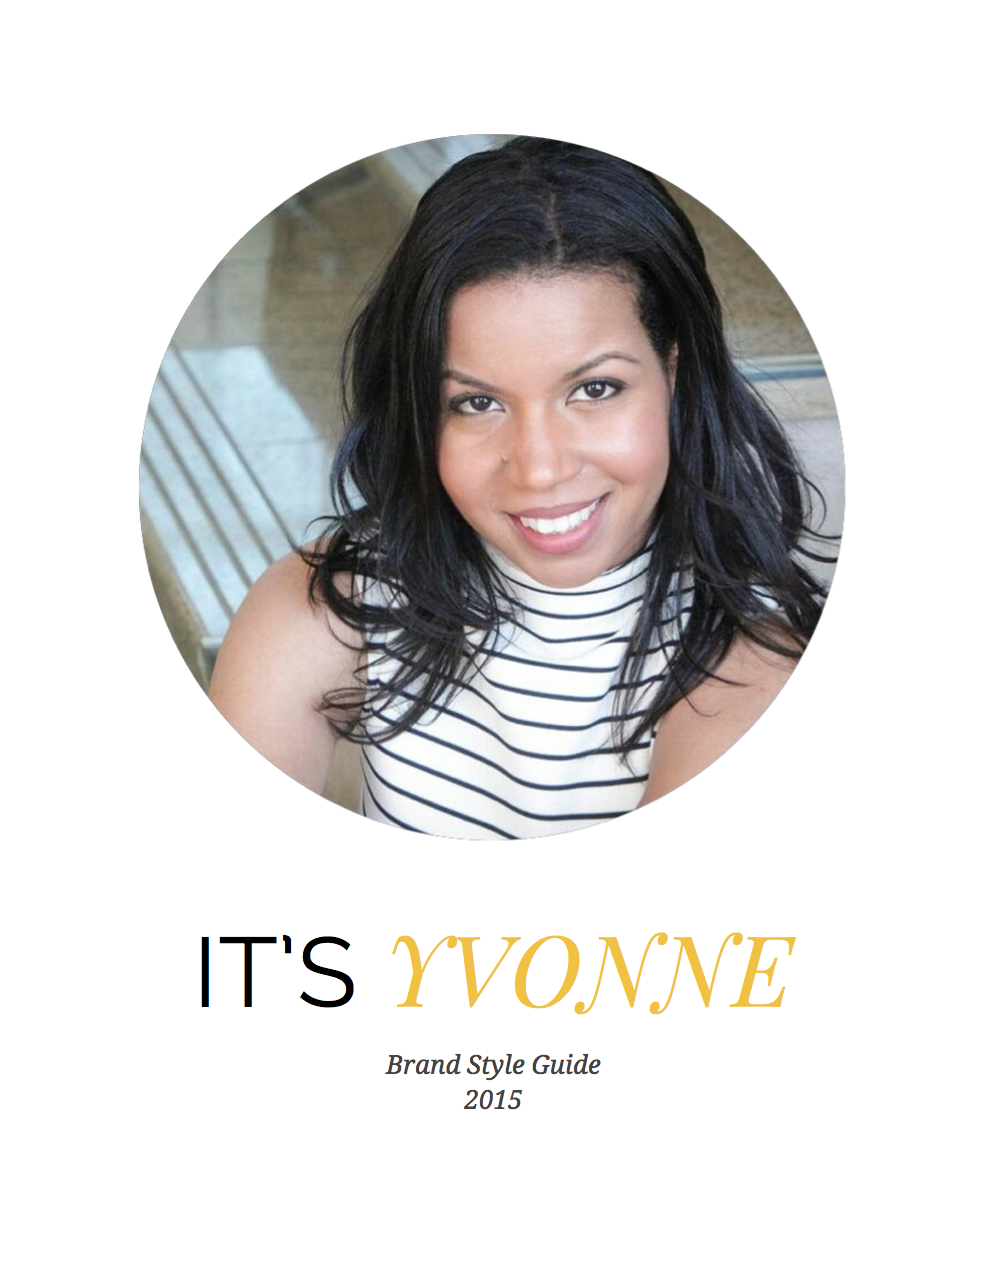 Yvonne Brand Style Guide